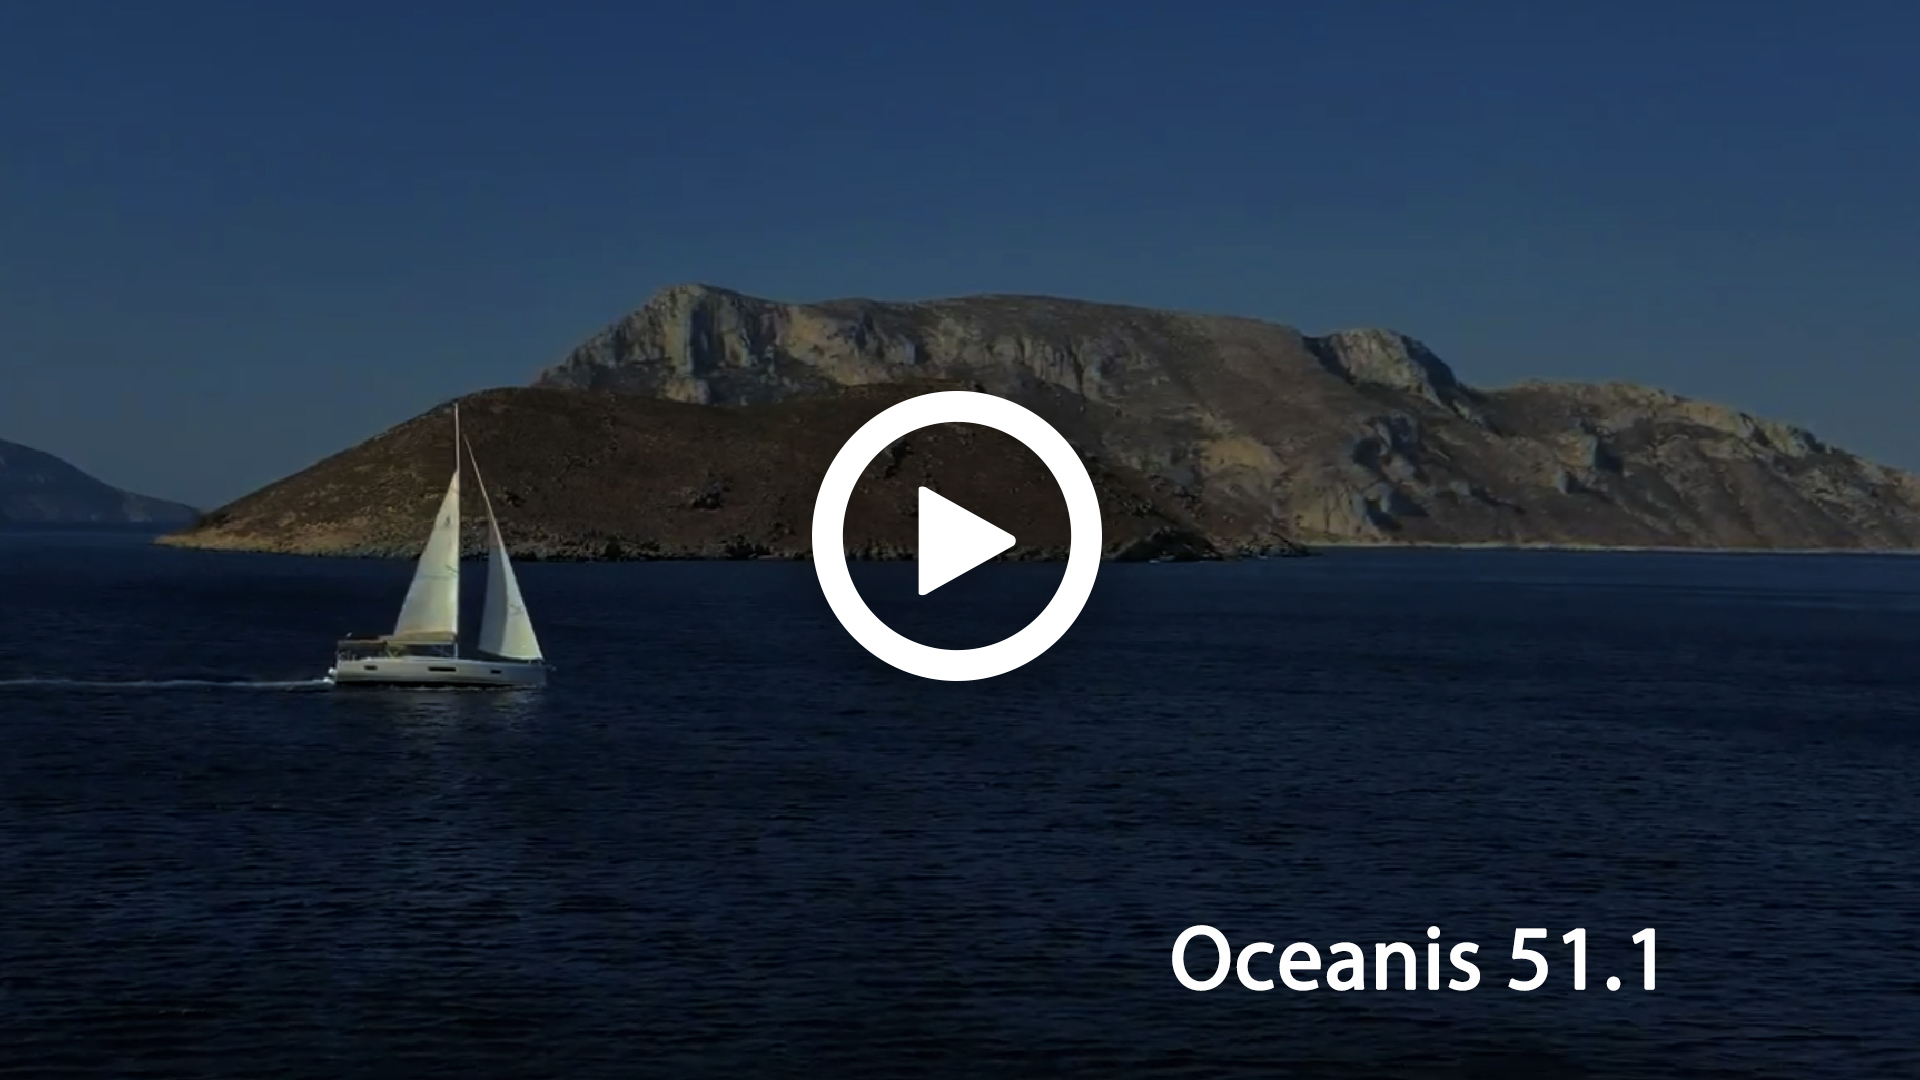 Sailing video to sale - Oceanis 51.1 charter